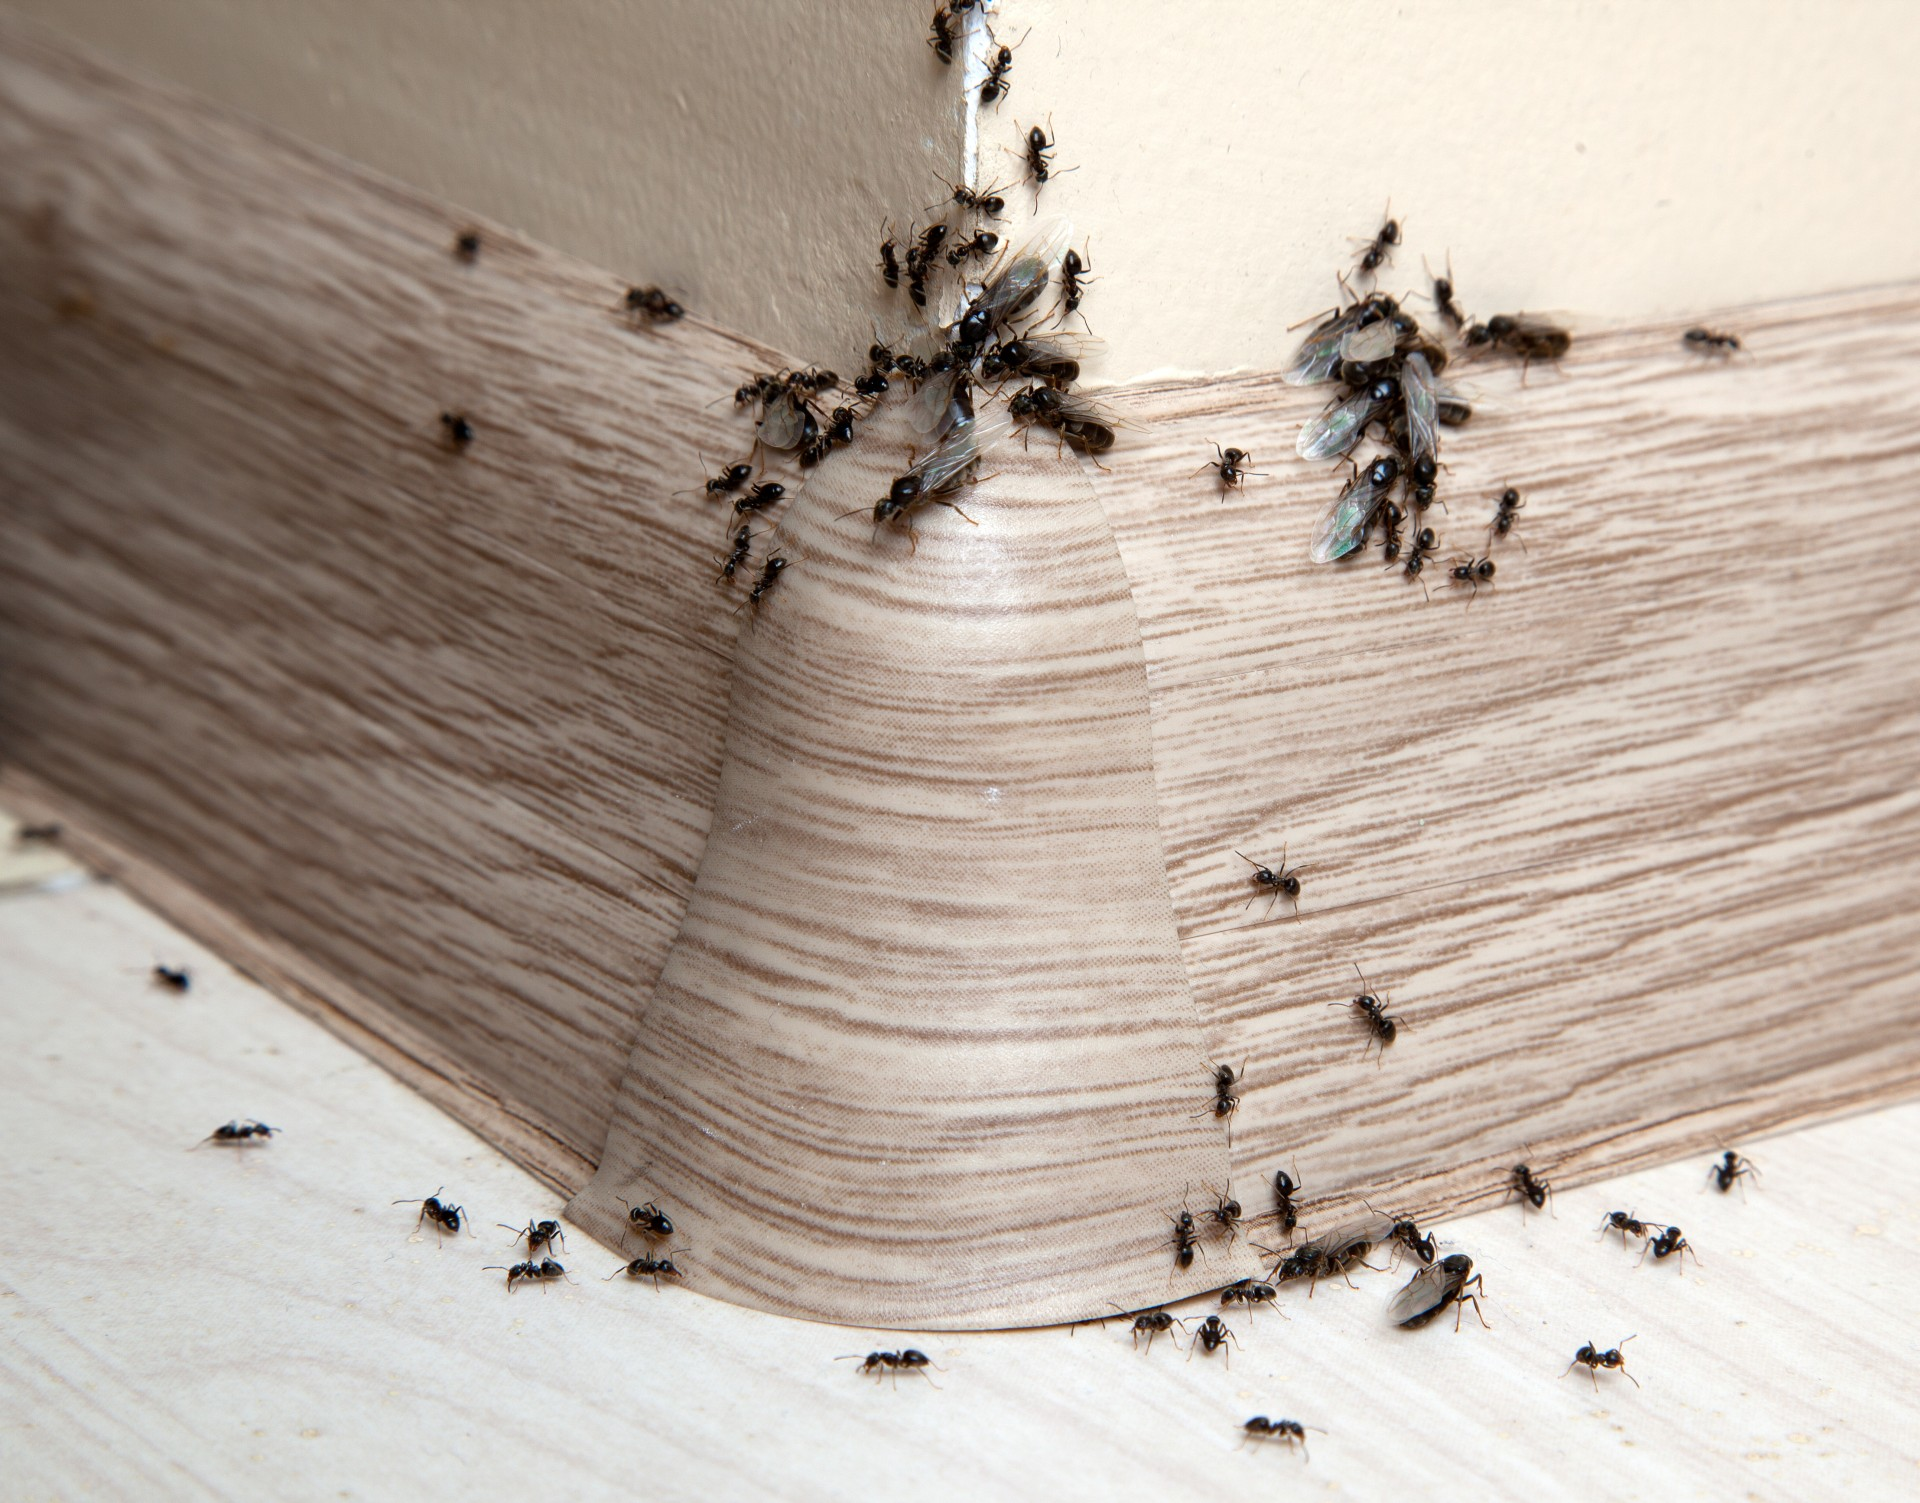 Ant Infestation, Pest Control in Staines-upon-Thames, Egham Hythe, TW18. Call Now 020 8166 9746